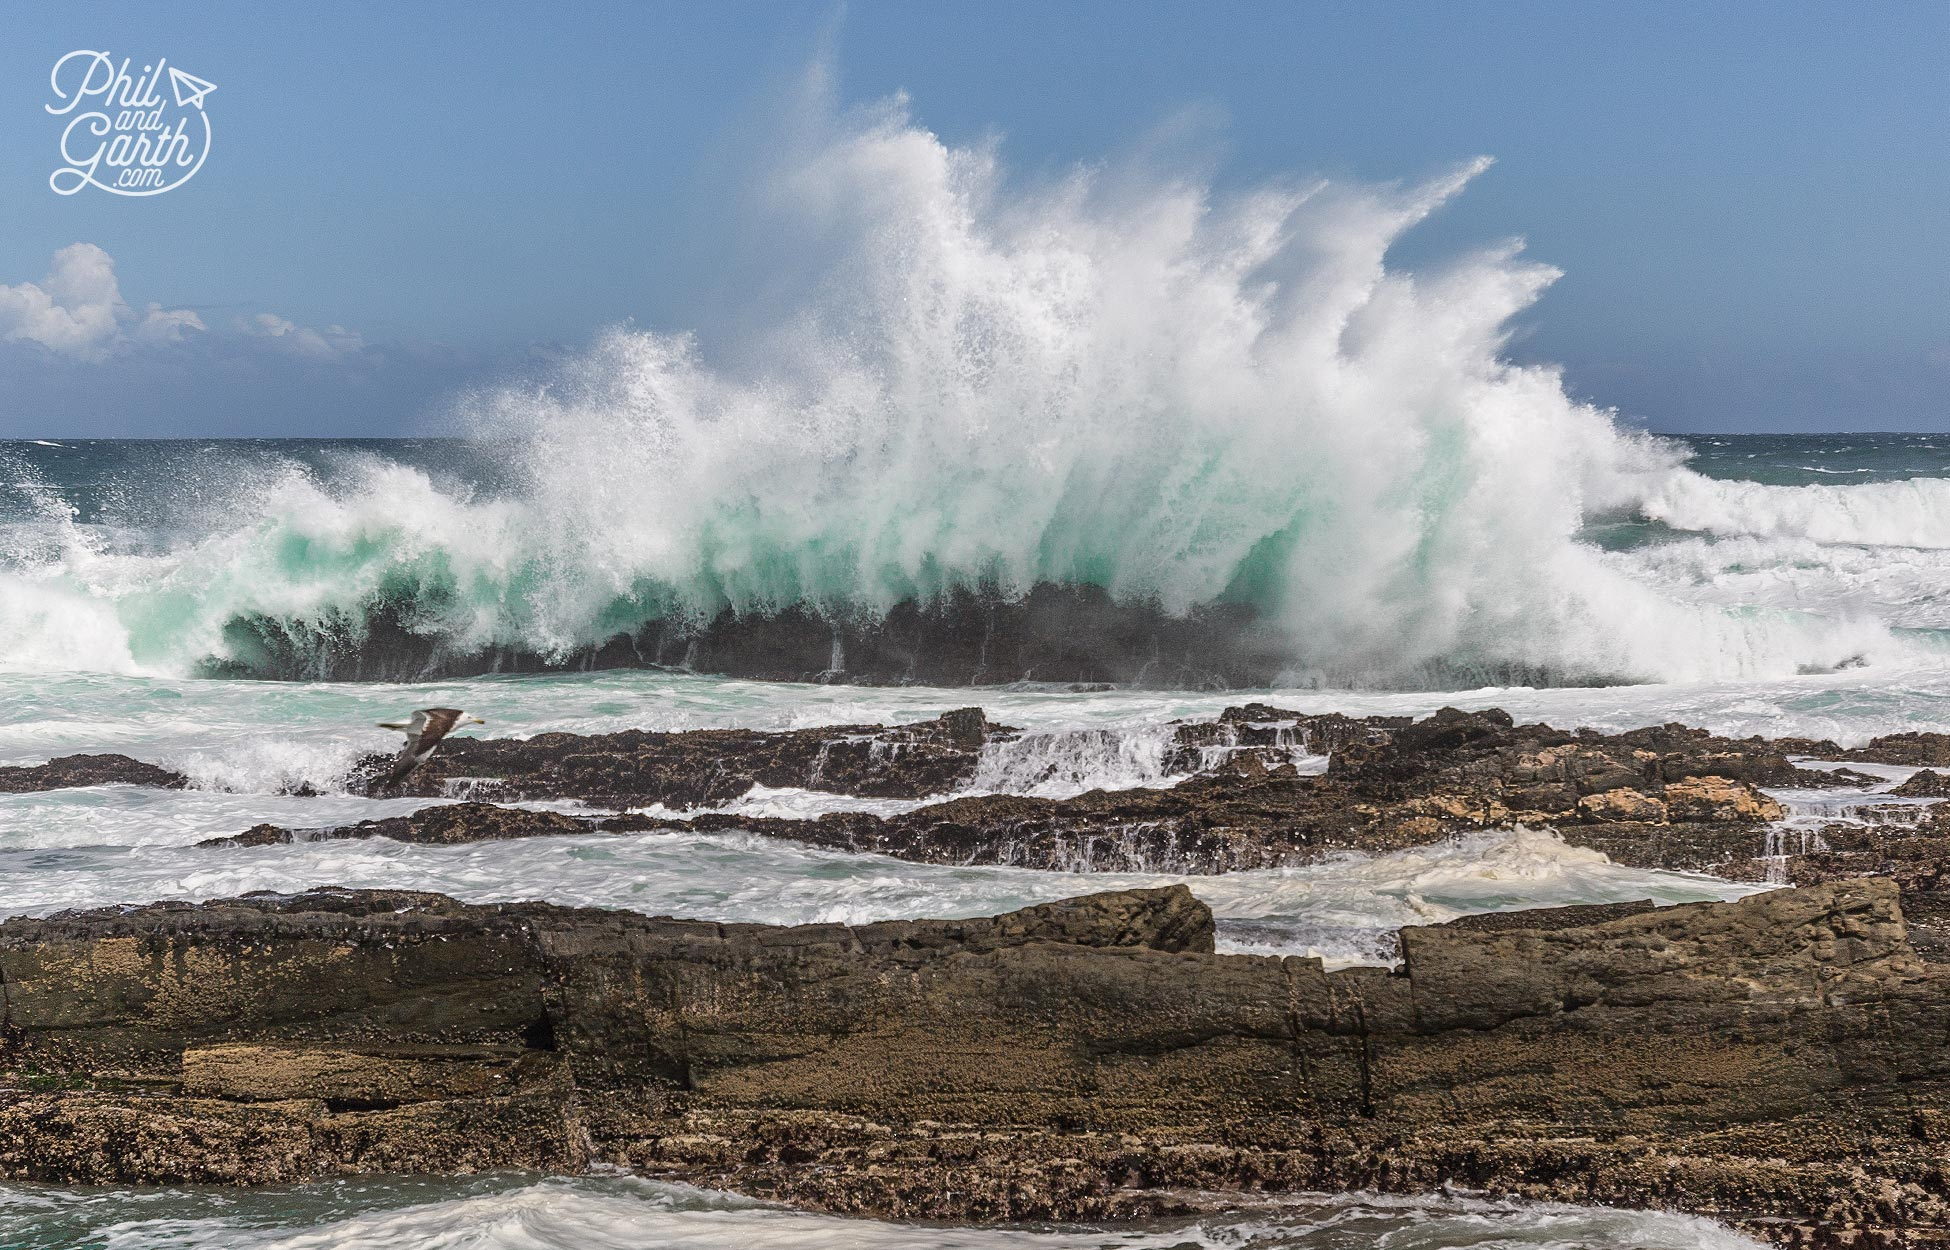 Tremendous power in the waves crashing against the rocks